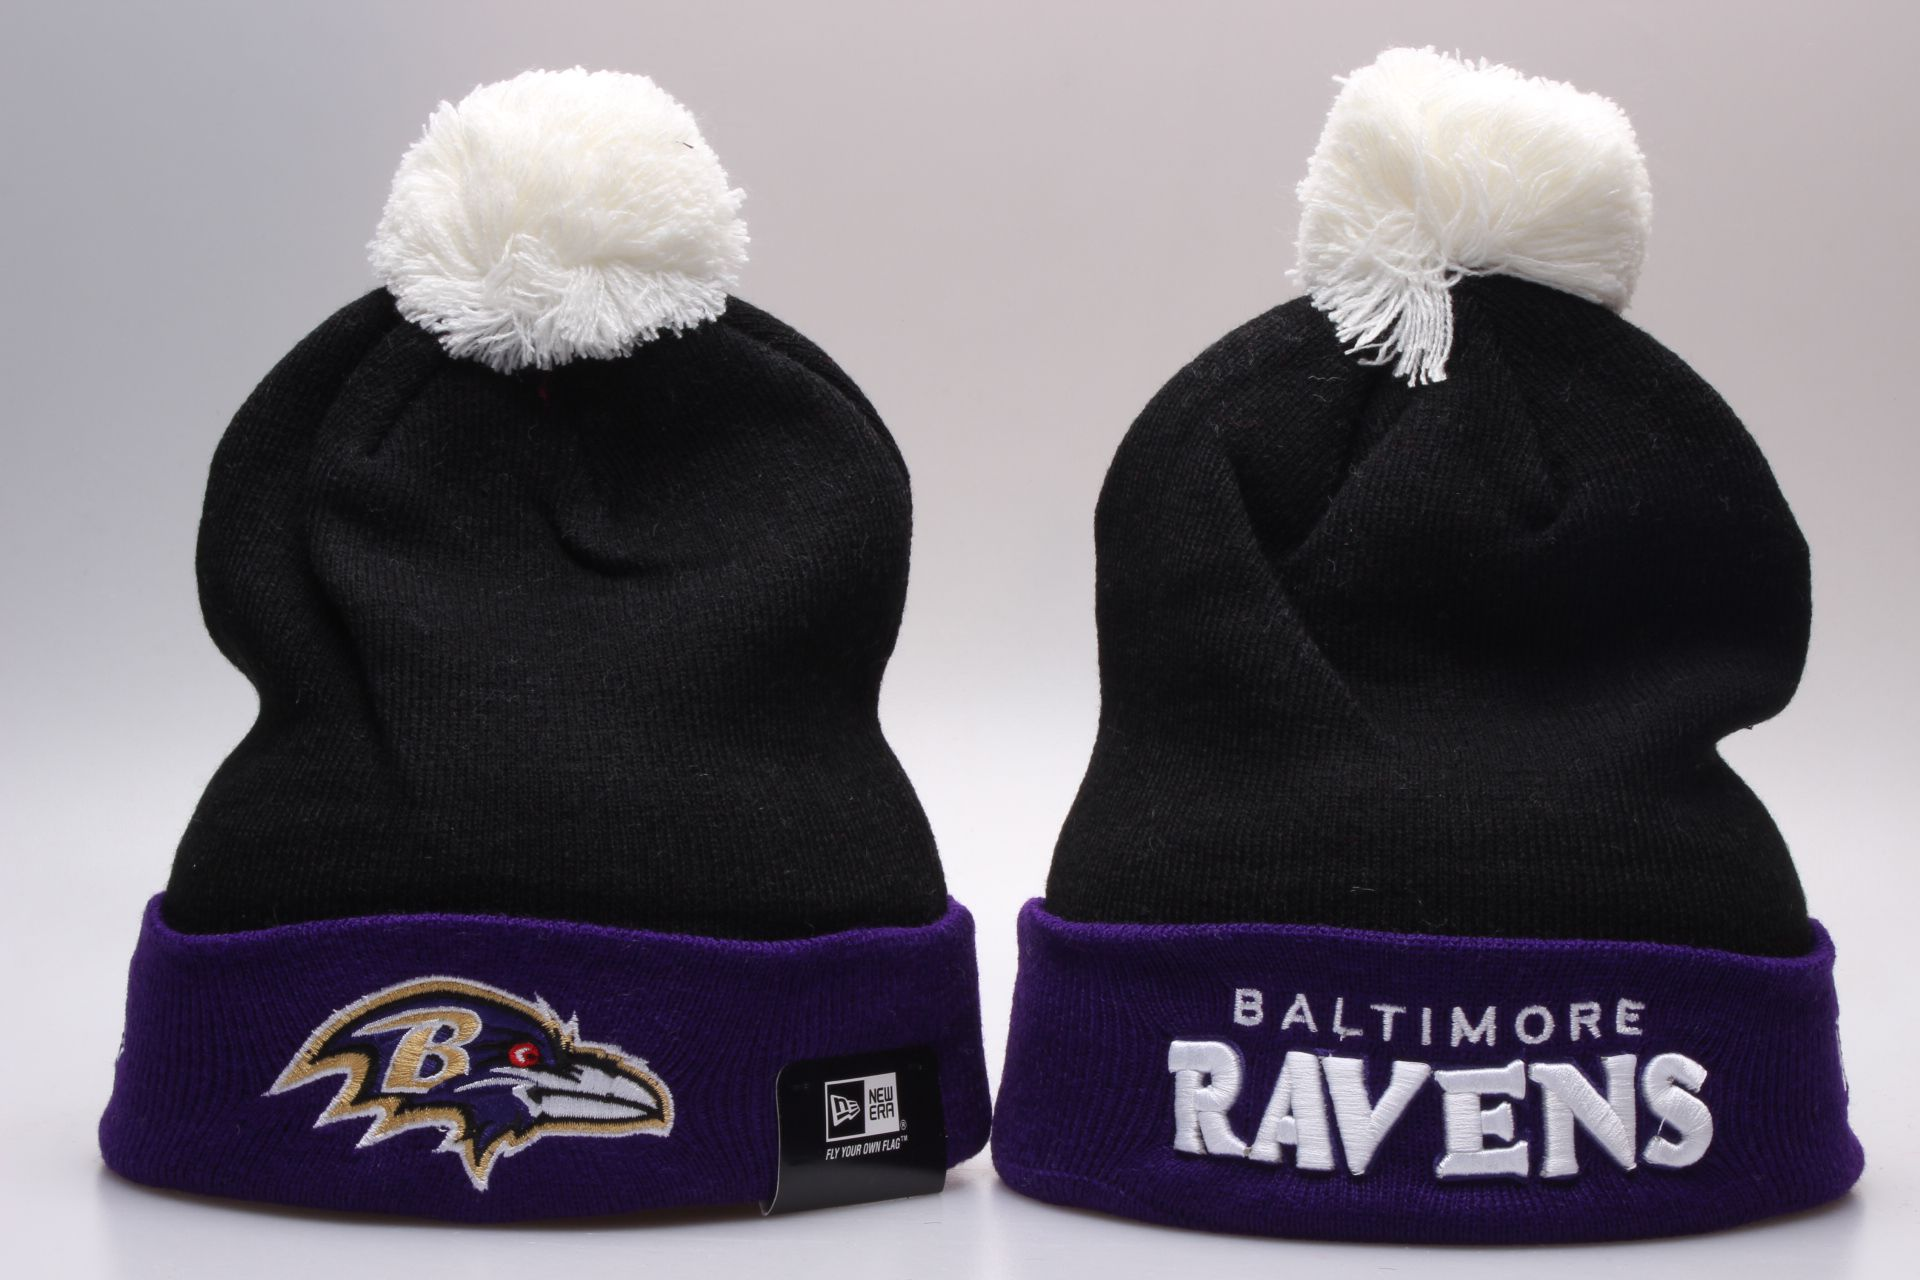 NFL Baltimore Ravens Beanie hot hat2